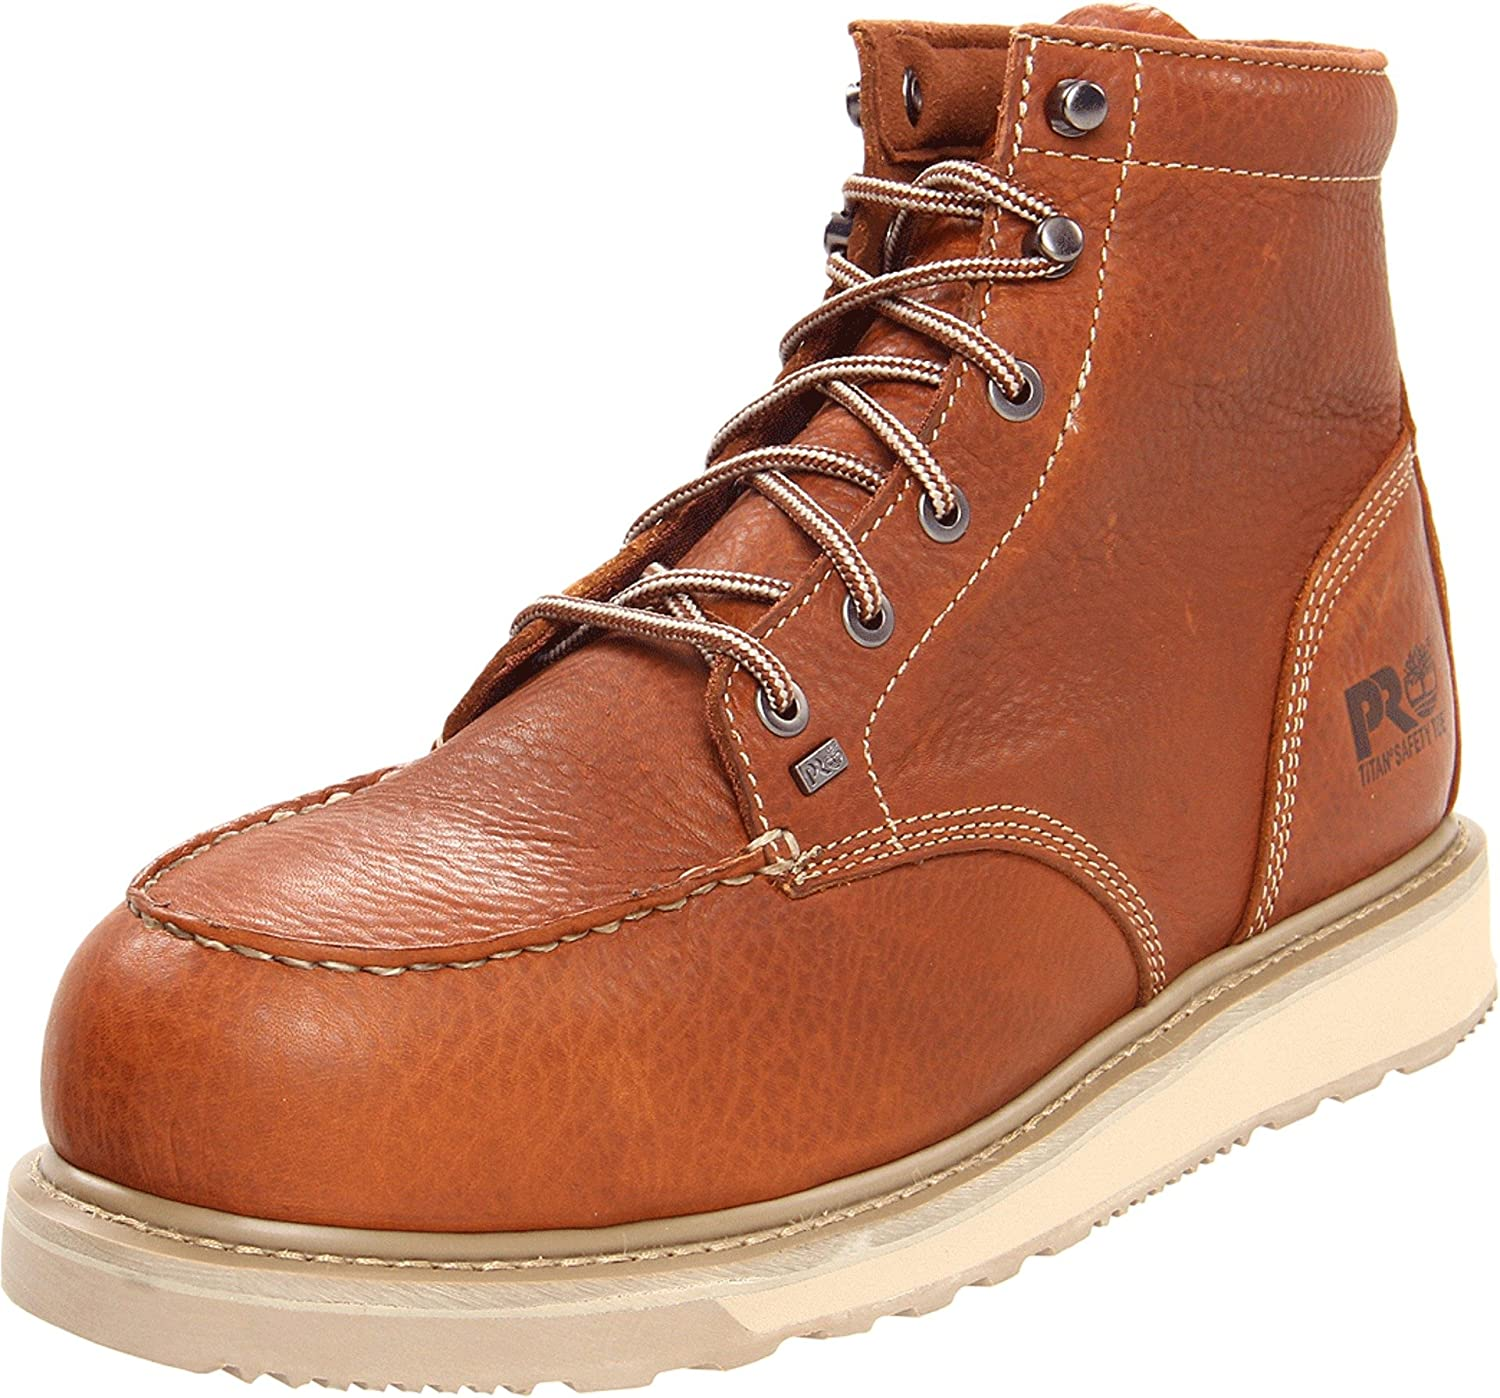 2fd86ae1998 Amazon.com  Timberland PRO Men s Barstow Wedge Alloy ST Work Boot  Shoes